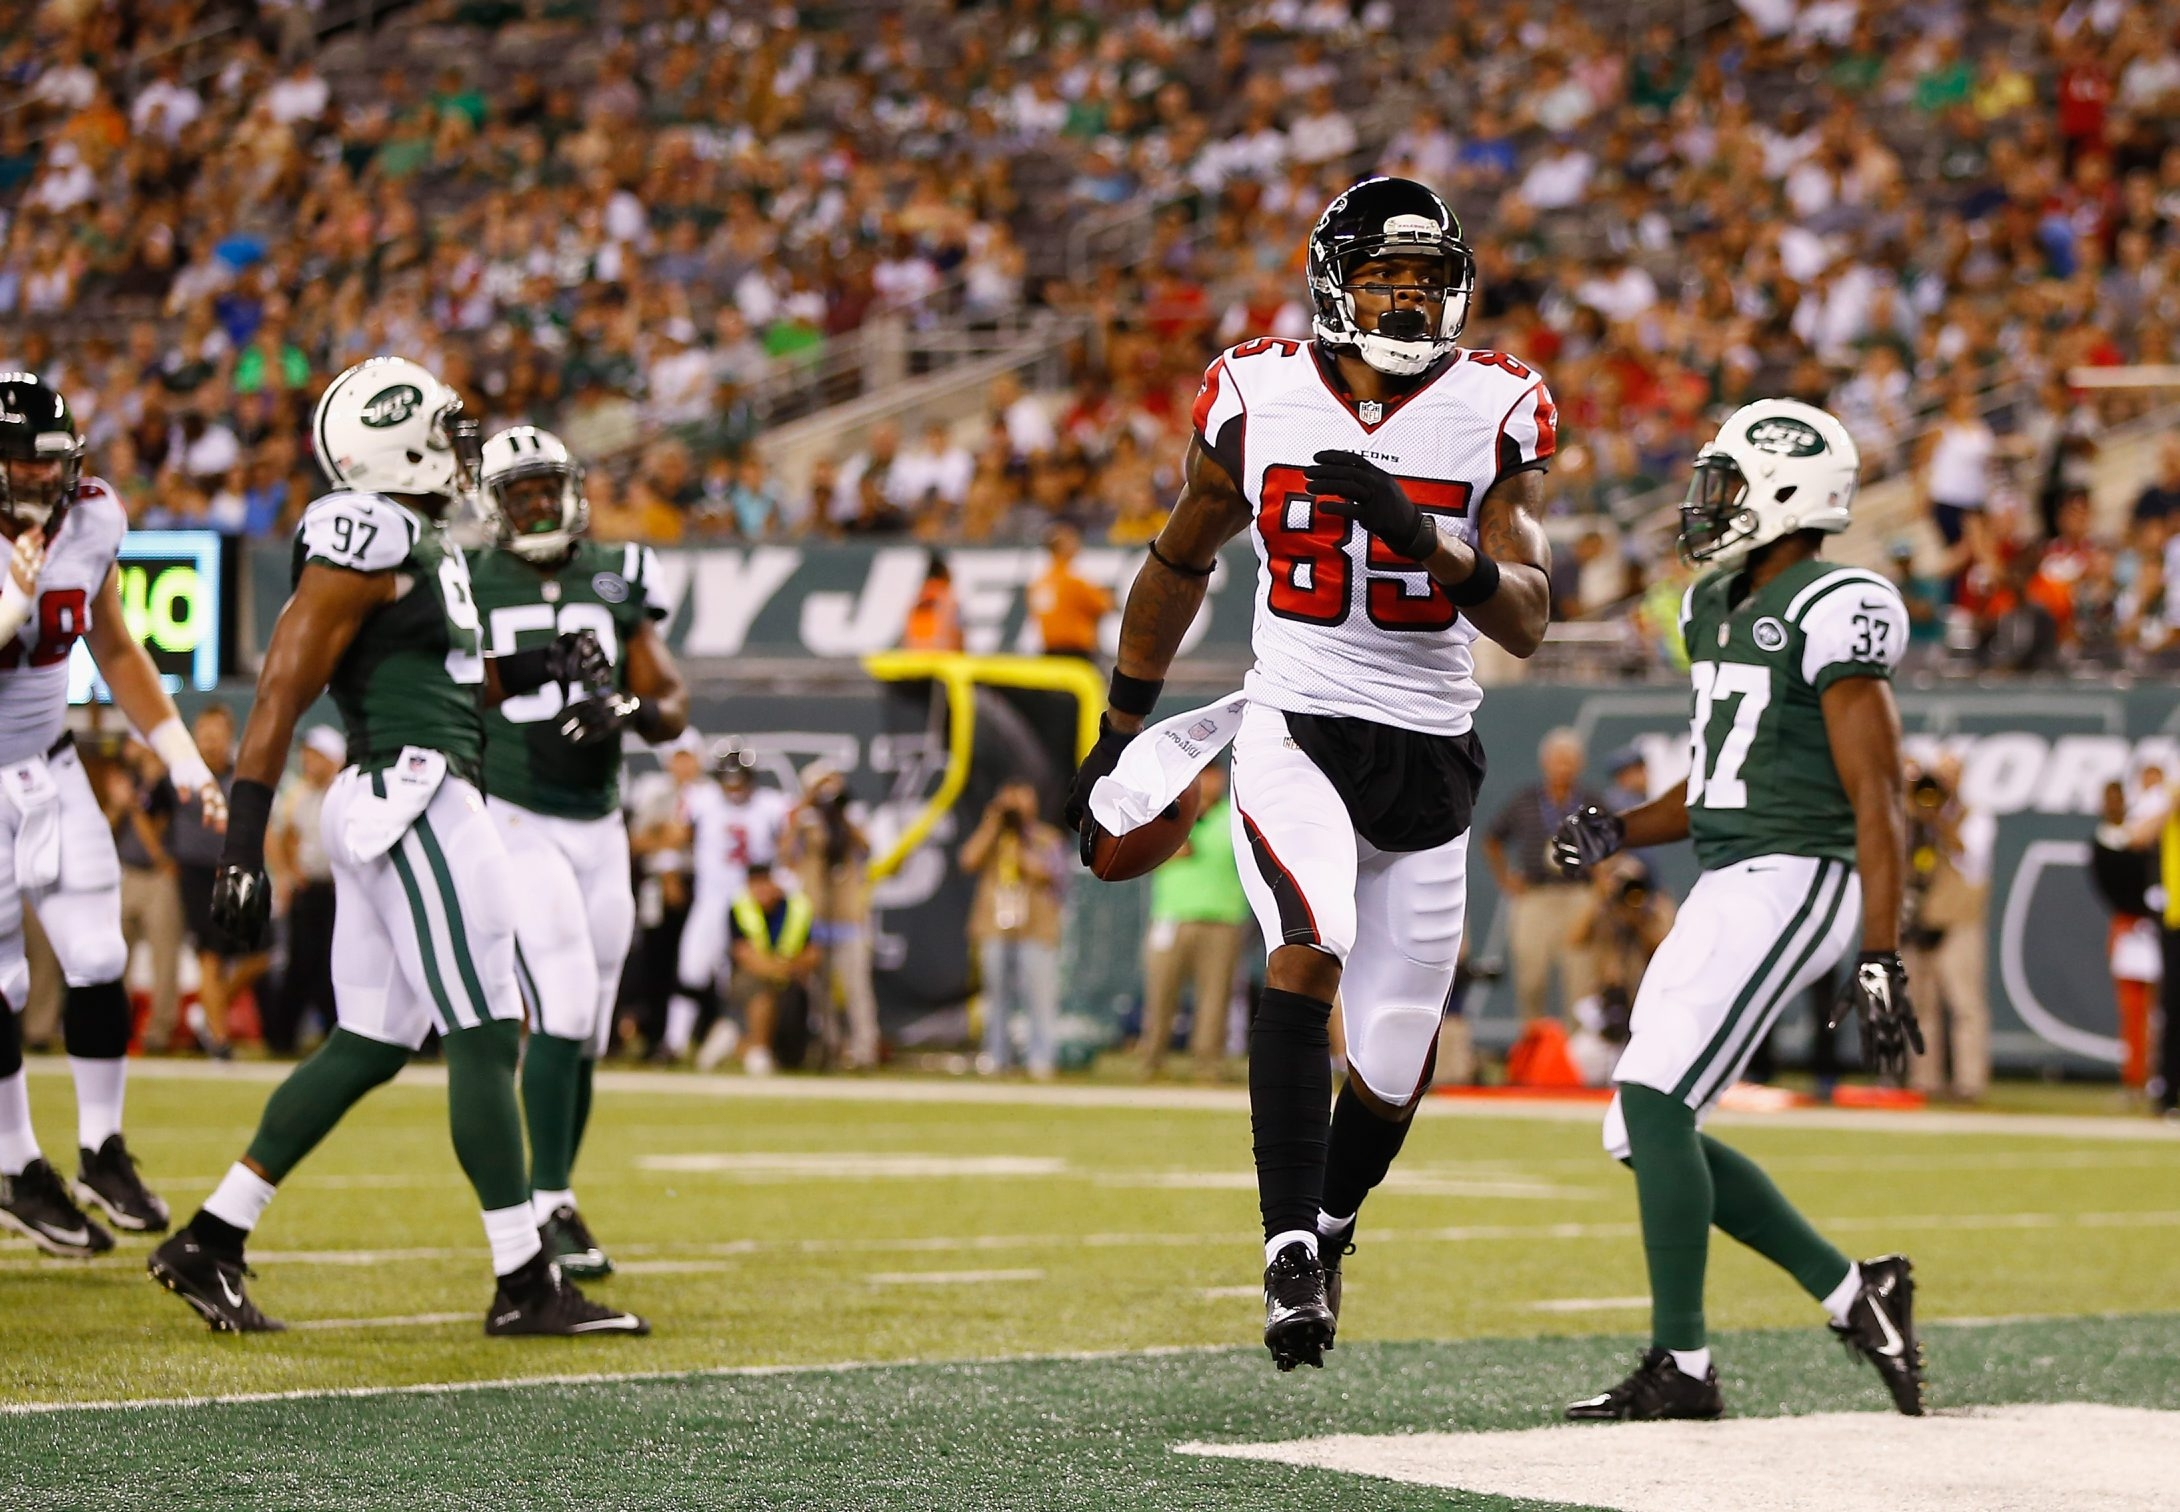 EAST RUTHERFORD, NJ - AUGUST 21:  Leonard Hankerson #85 of the Atlanta Falcons scores a touchdown in the second quarter against the New York Jets during their pre season game at MetLife Stadium on August 21, 2015 in East Rutherford, New Jersey.  (Photo by Al Bello/Getty Images)